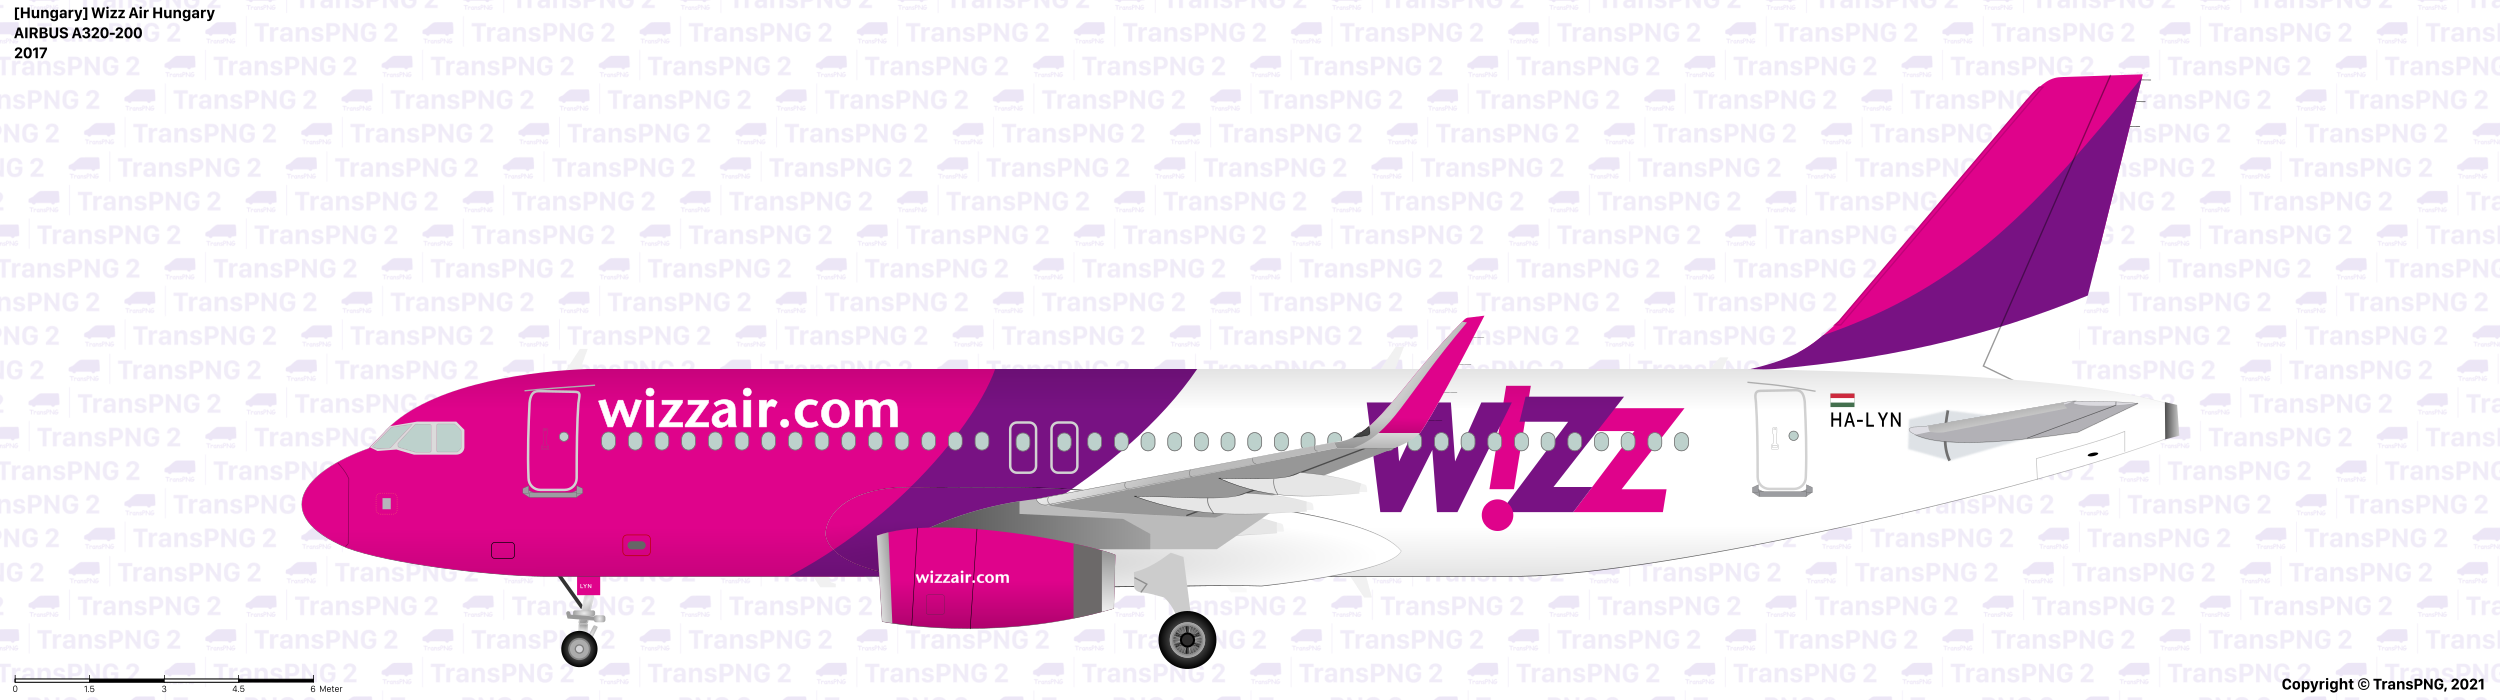 [25132] Wizz Air Hungary 25132